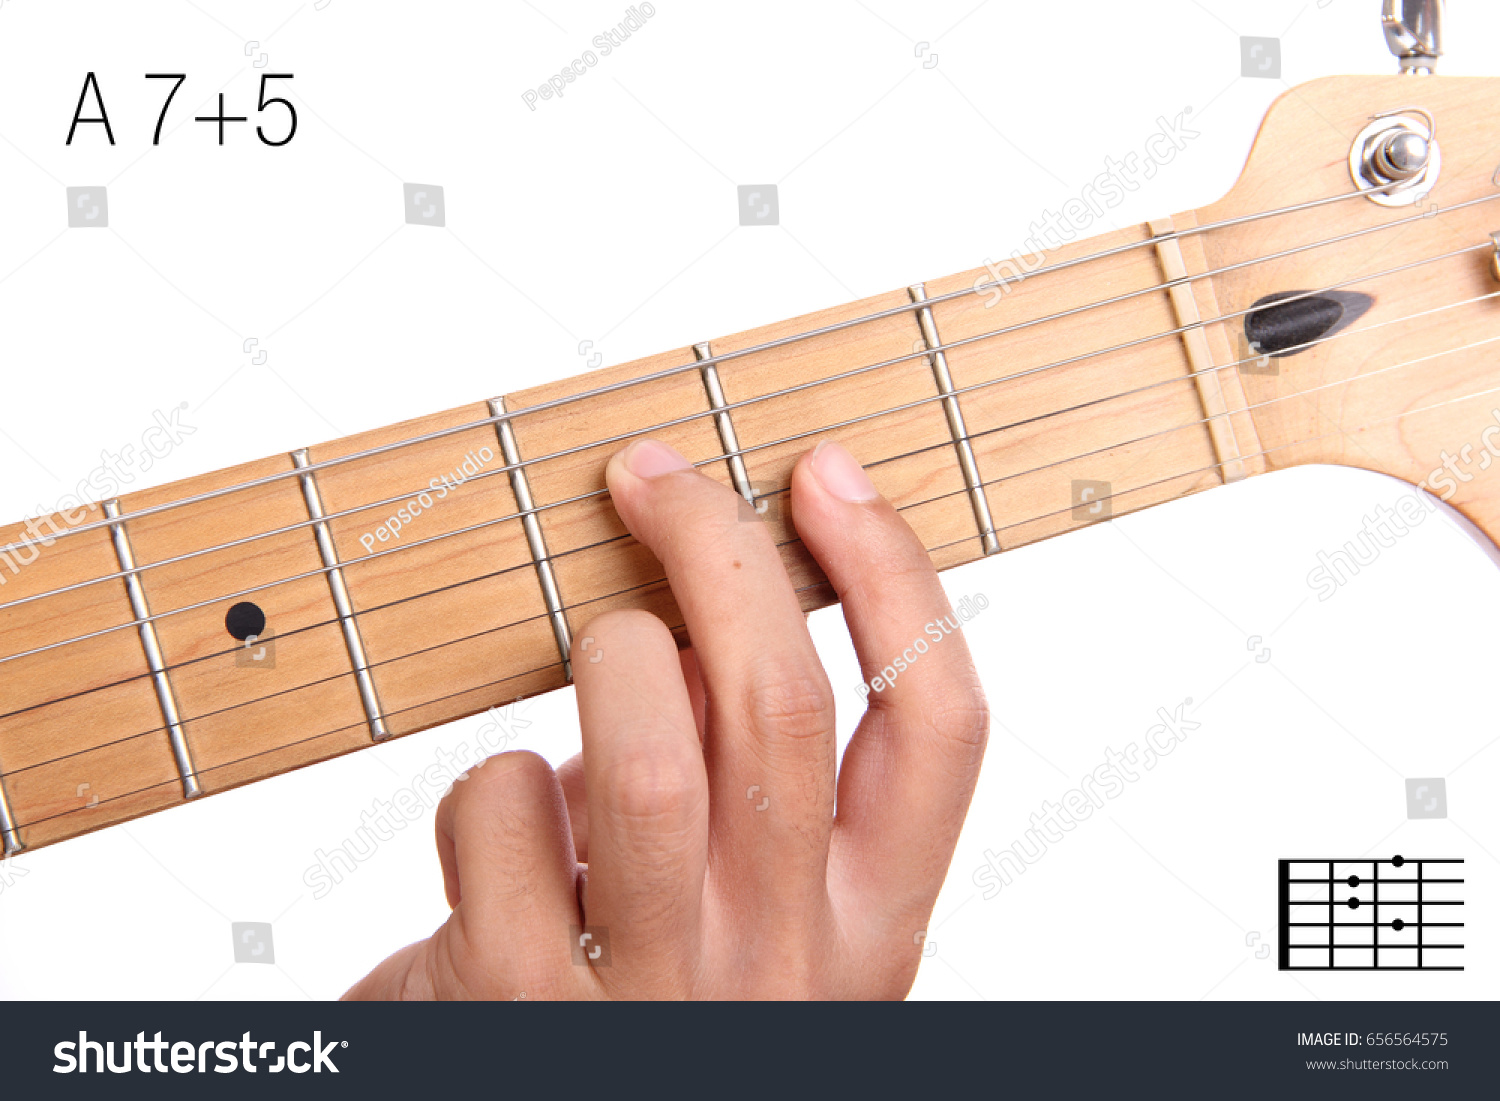 A 75 Advanced Guitar Keys Series Closeup Stock Photo Edit Now